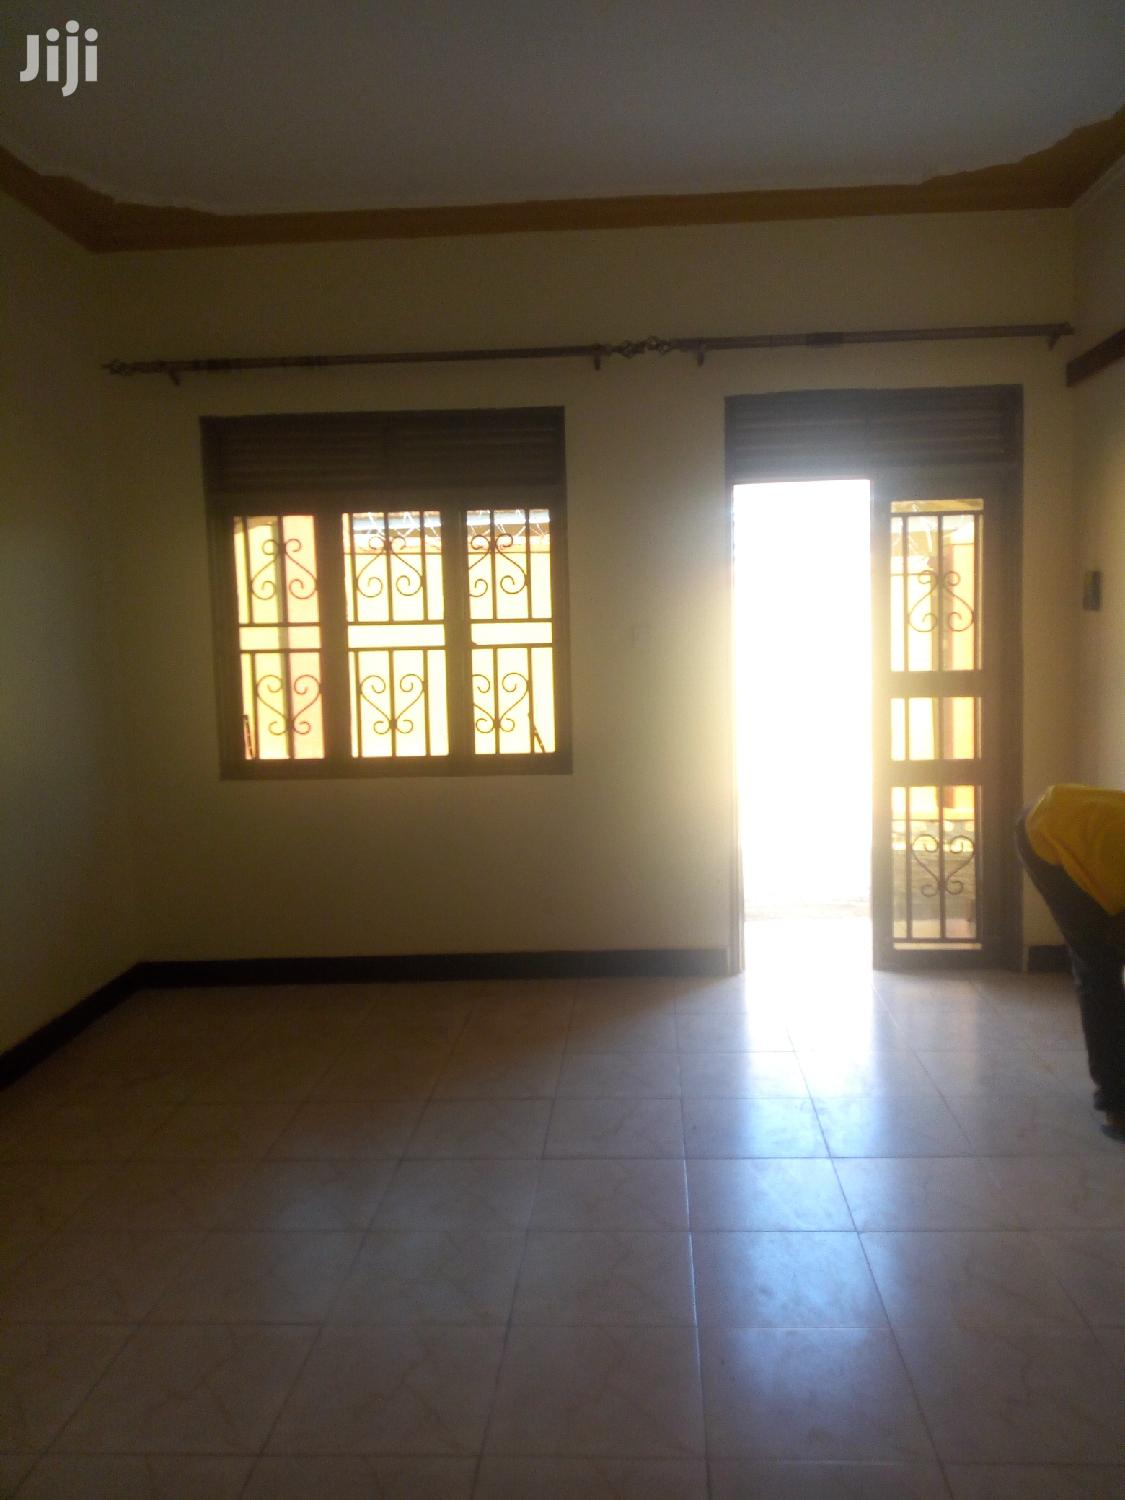 Kireka Self Contained Double Room House For Rent | Houses & Apartments For Rent for sale in Kampala, Central Region, Uganda